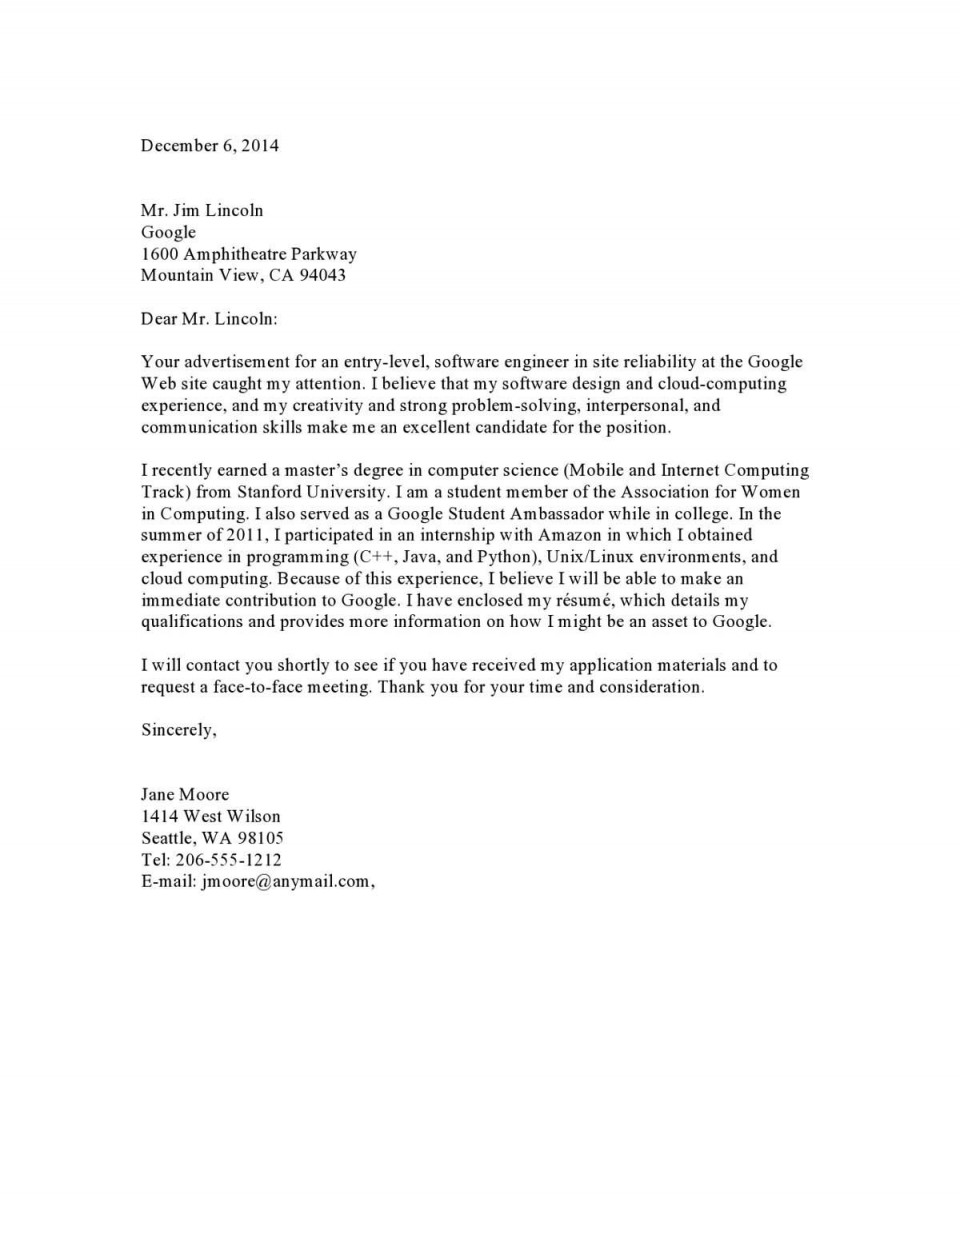 004 Rare Cover Letter Writing Sample Design  Example For Content Job Resume960